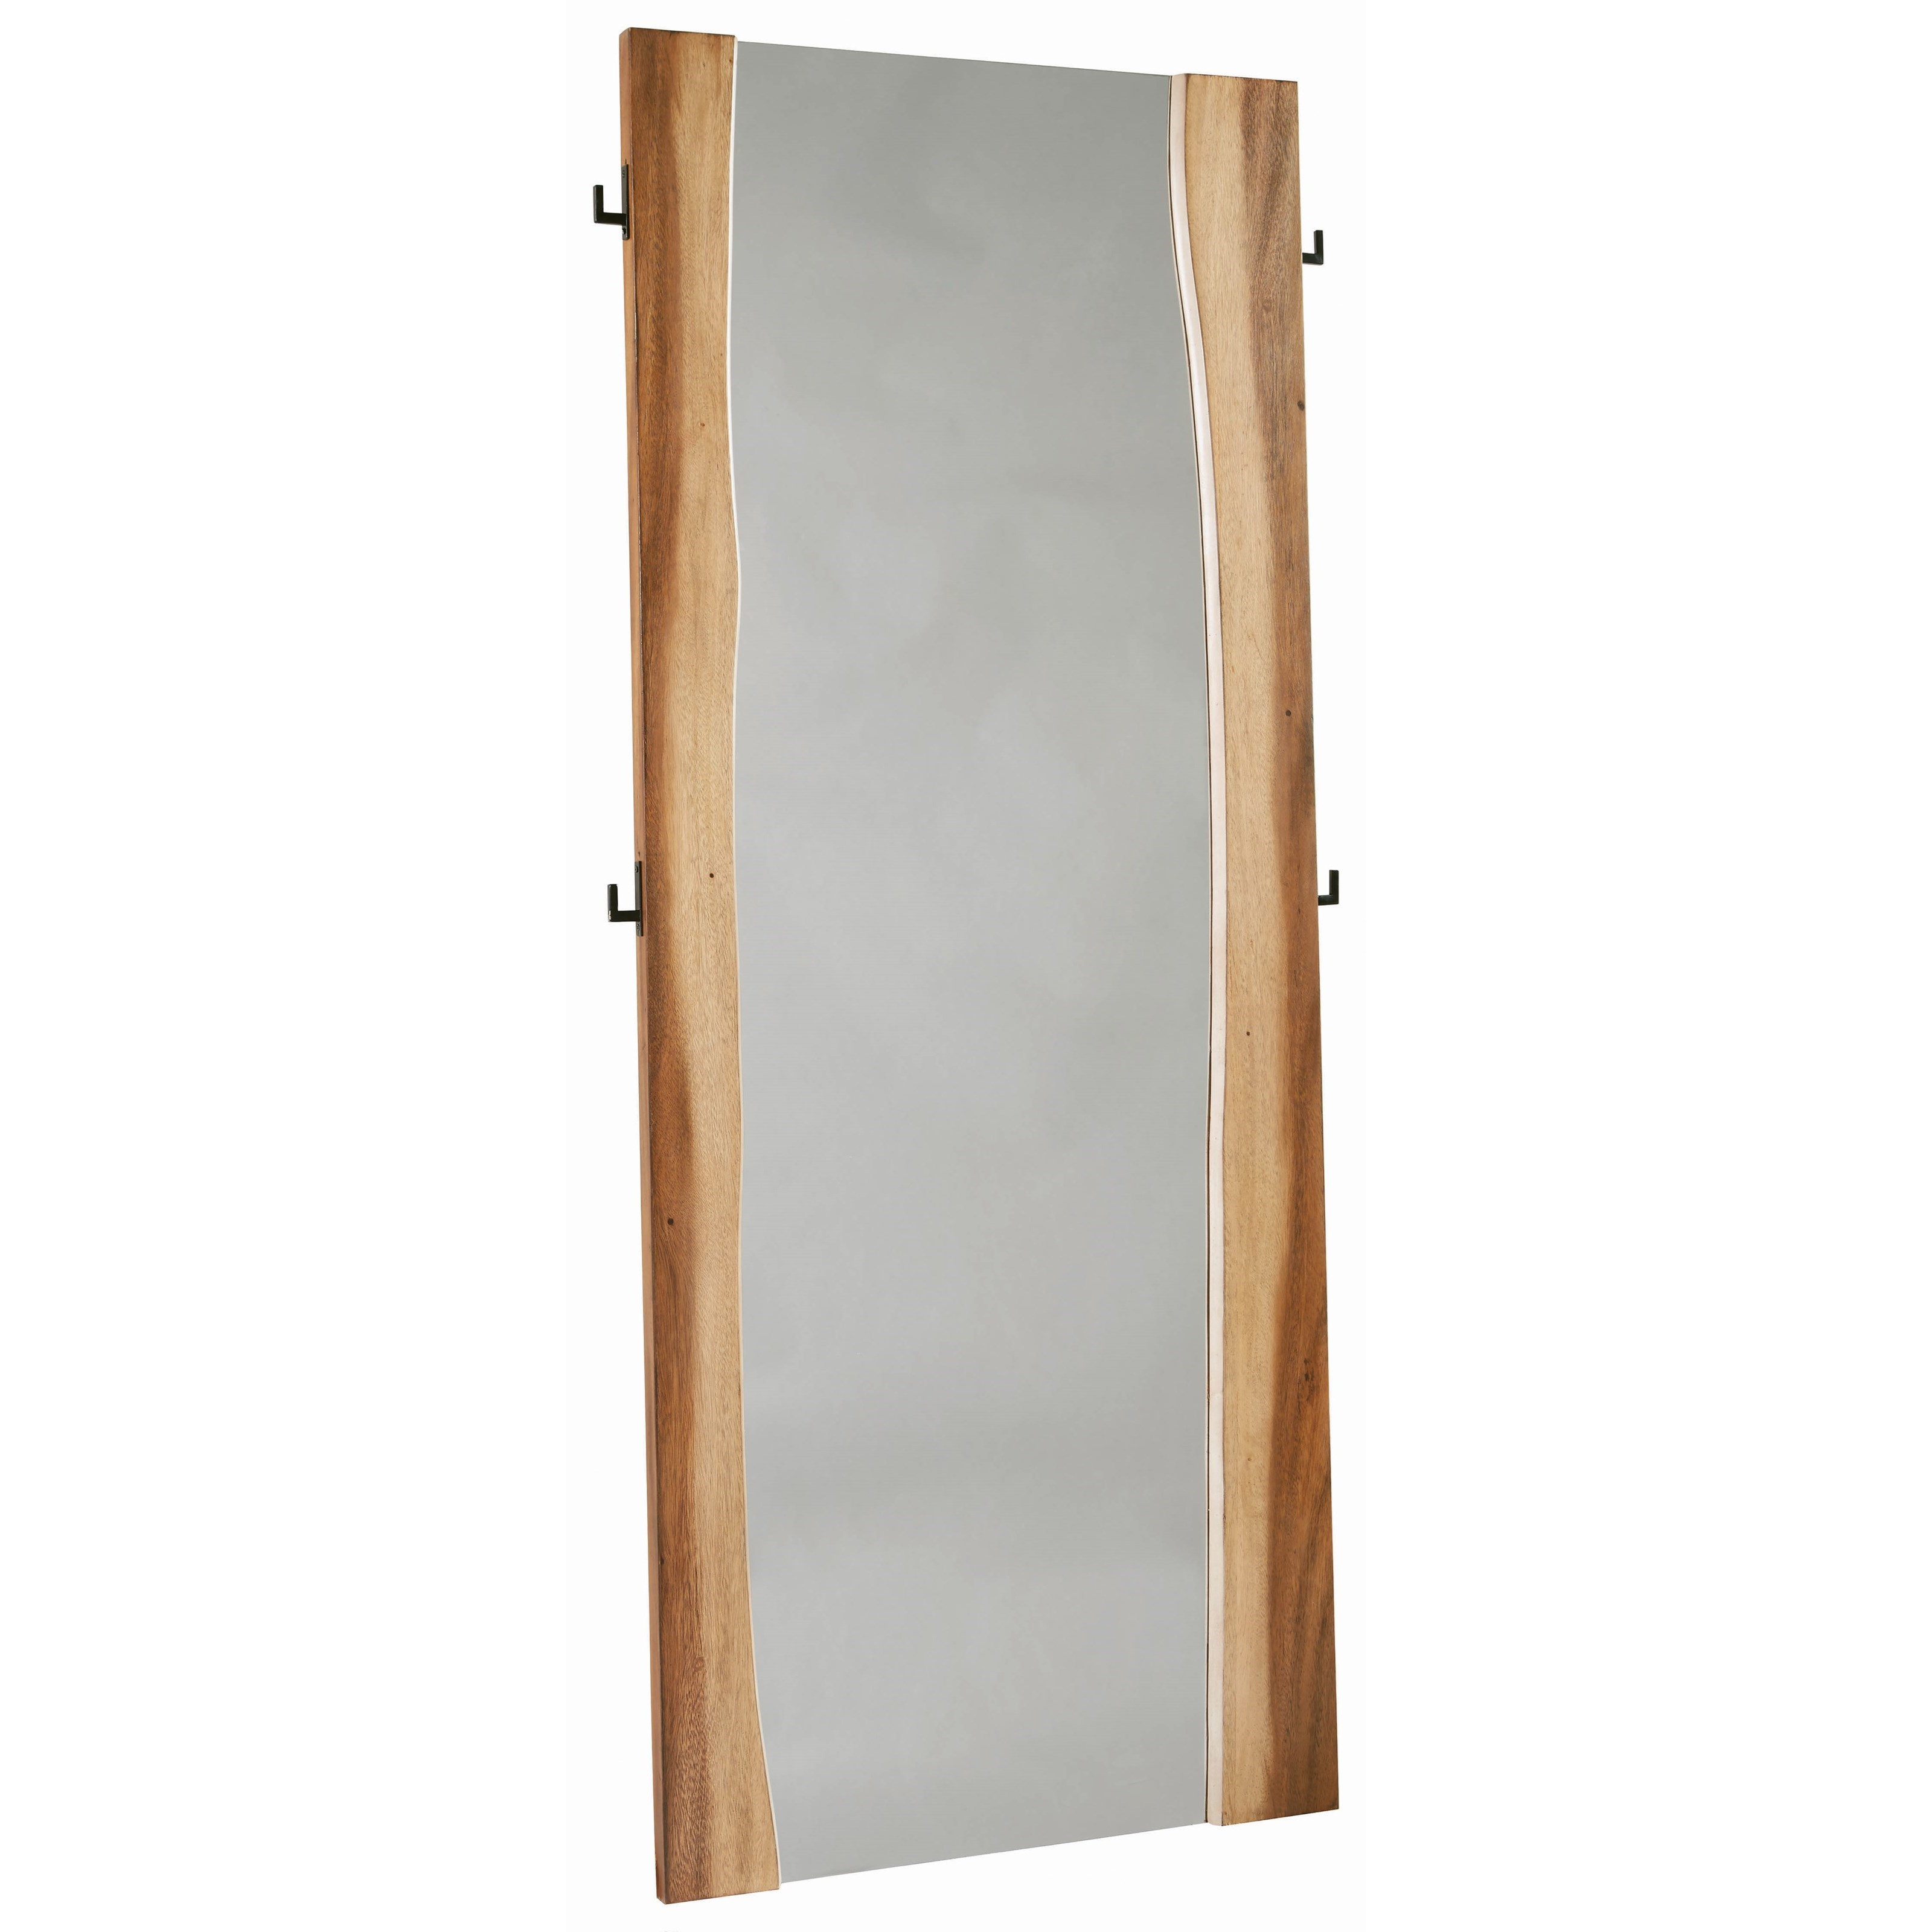 Standing Mirror Madden Rustic Full Length Standing Mirror With Coat Hooks By Scott Living At Value City Furniture